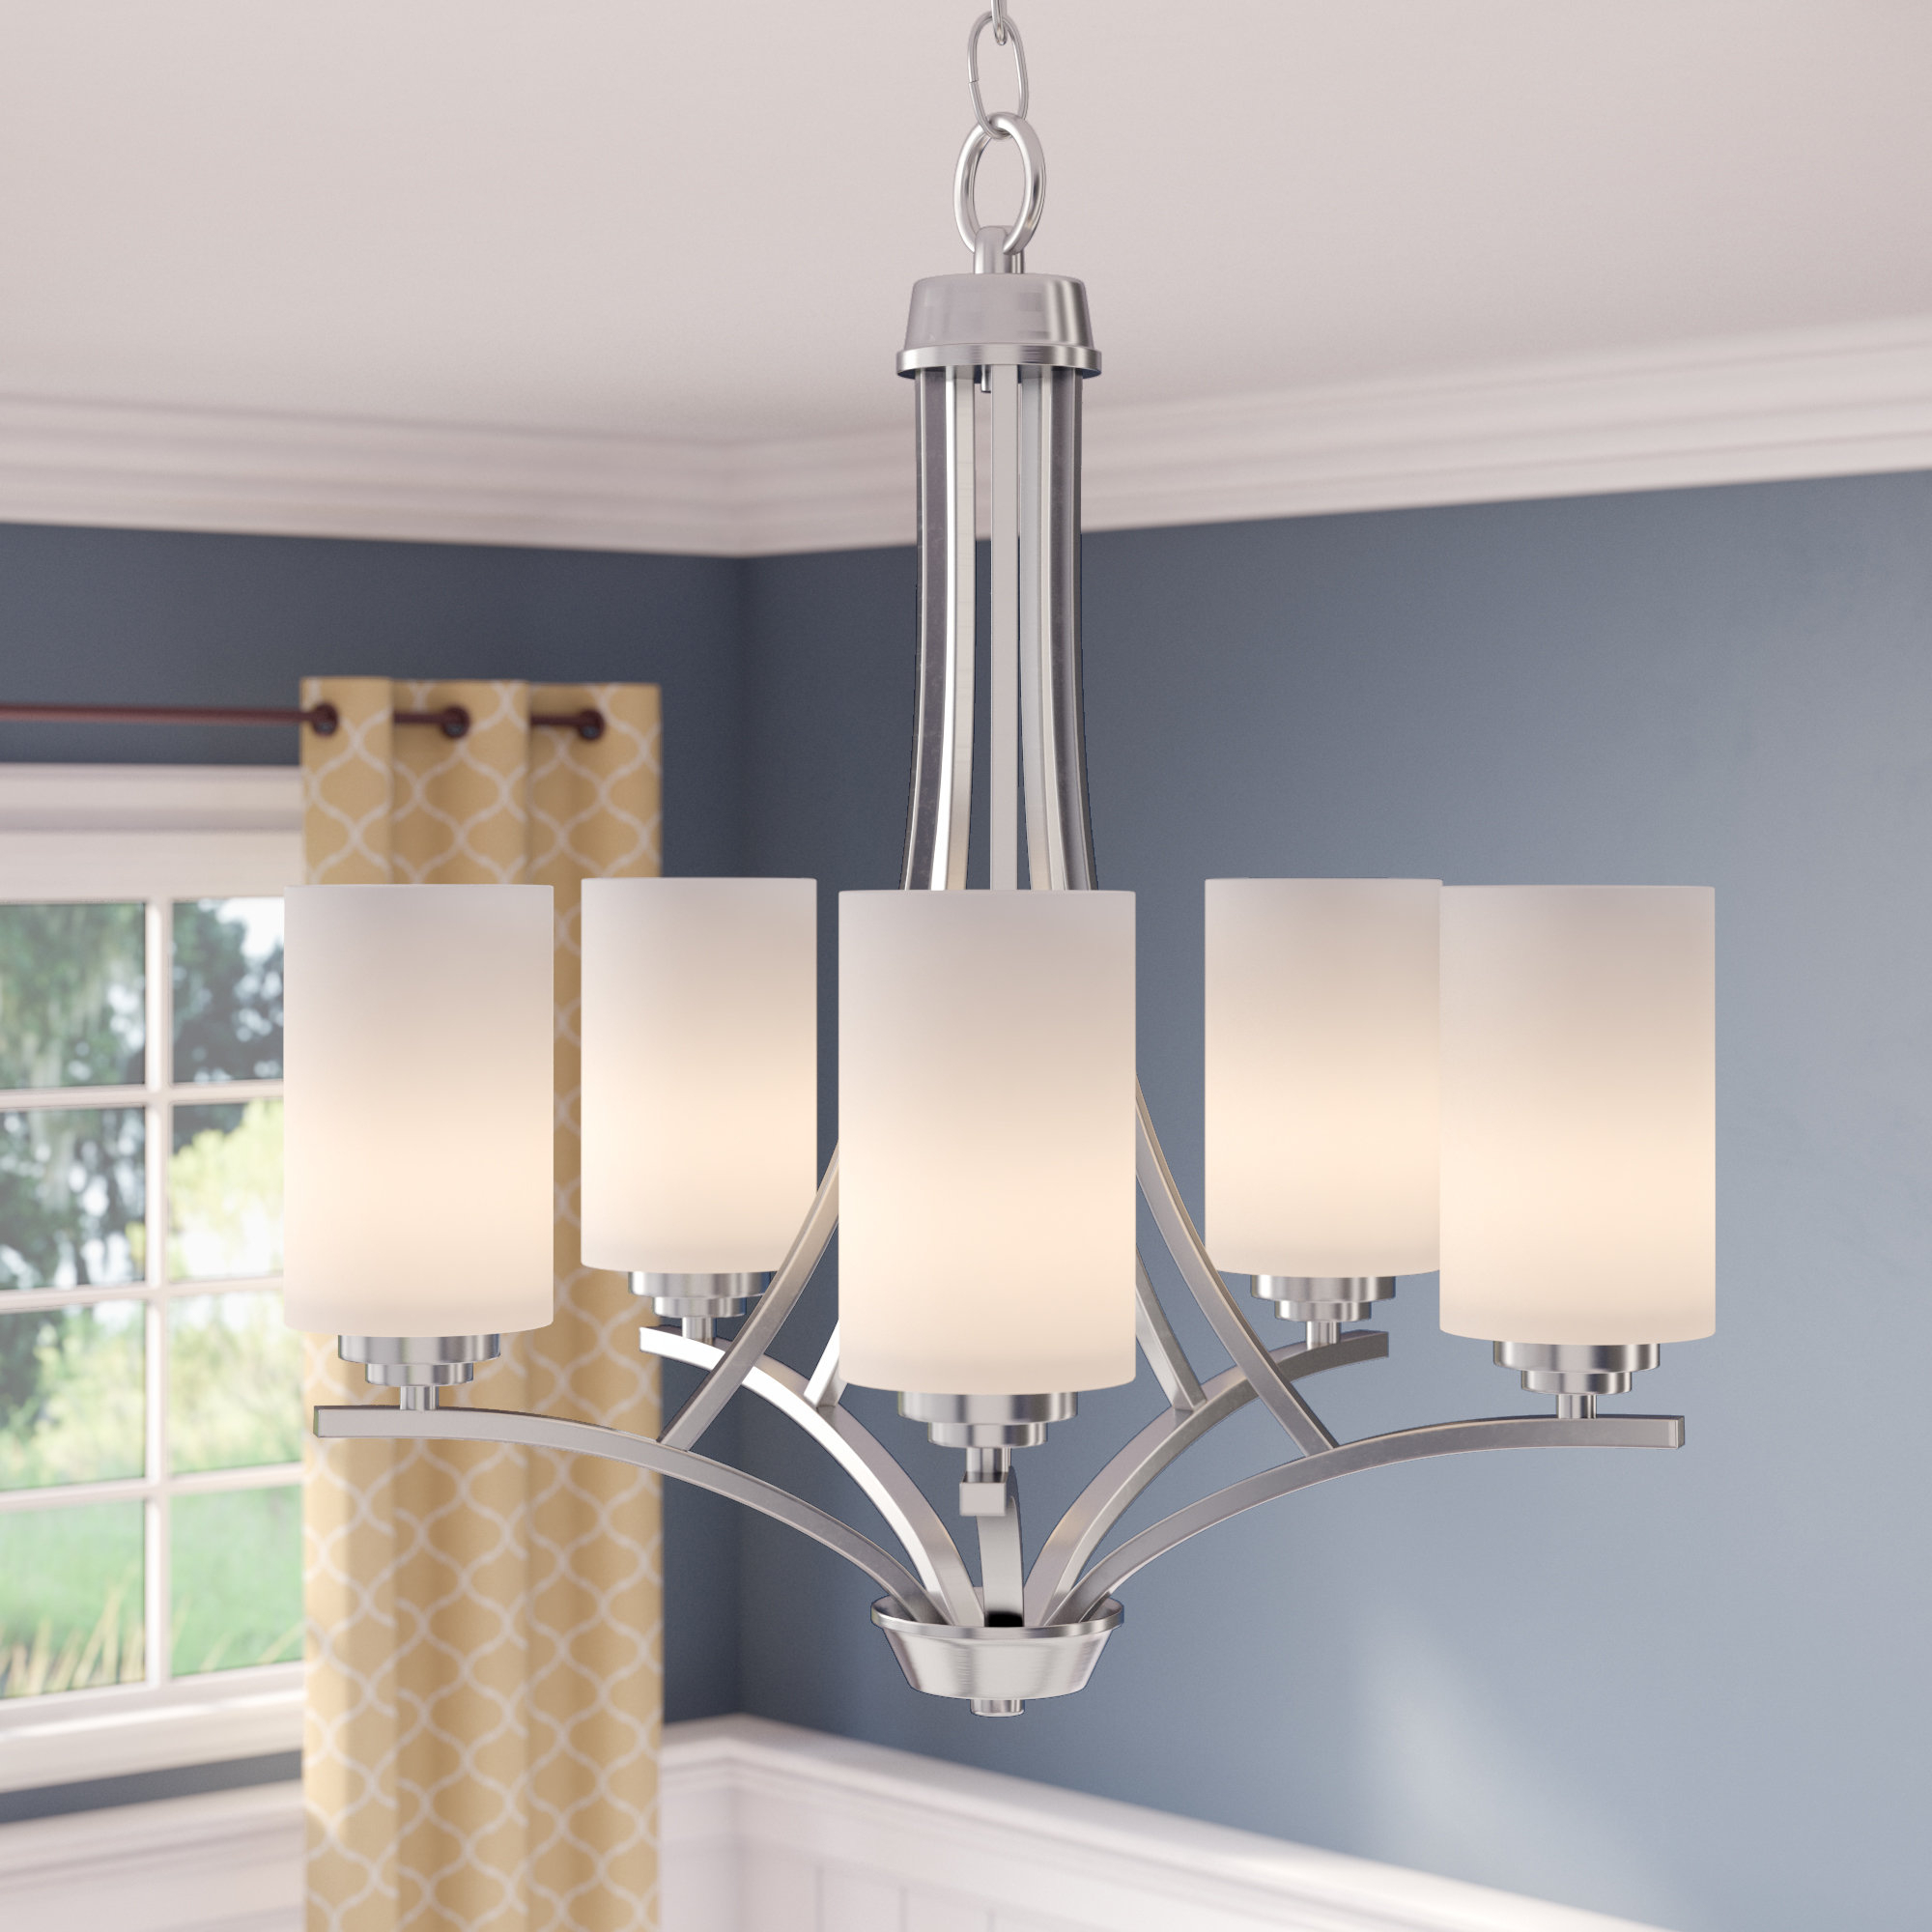 Bainsby 5 Light Shaded Chandelier With Hayden 5 Light Shaded Chandeliers (View 4 of 30)